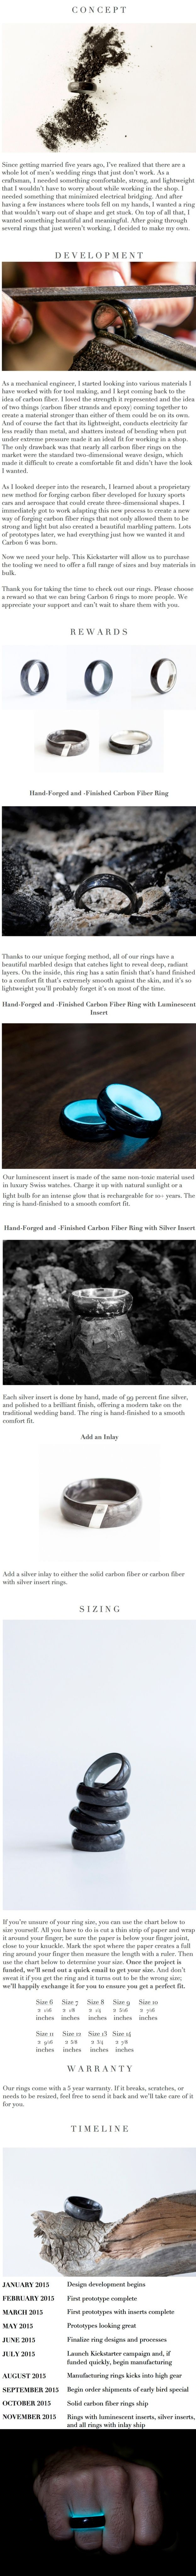 Carbon 6 Forged Carbon Fiber and Luminescent Rings by John Paul Easley — Kickstarter